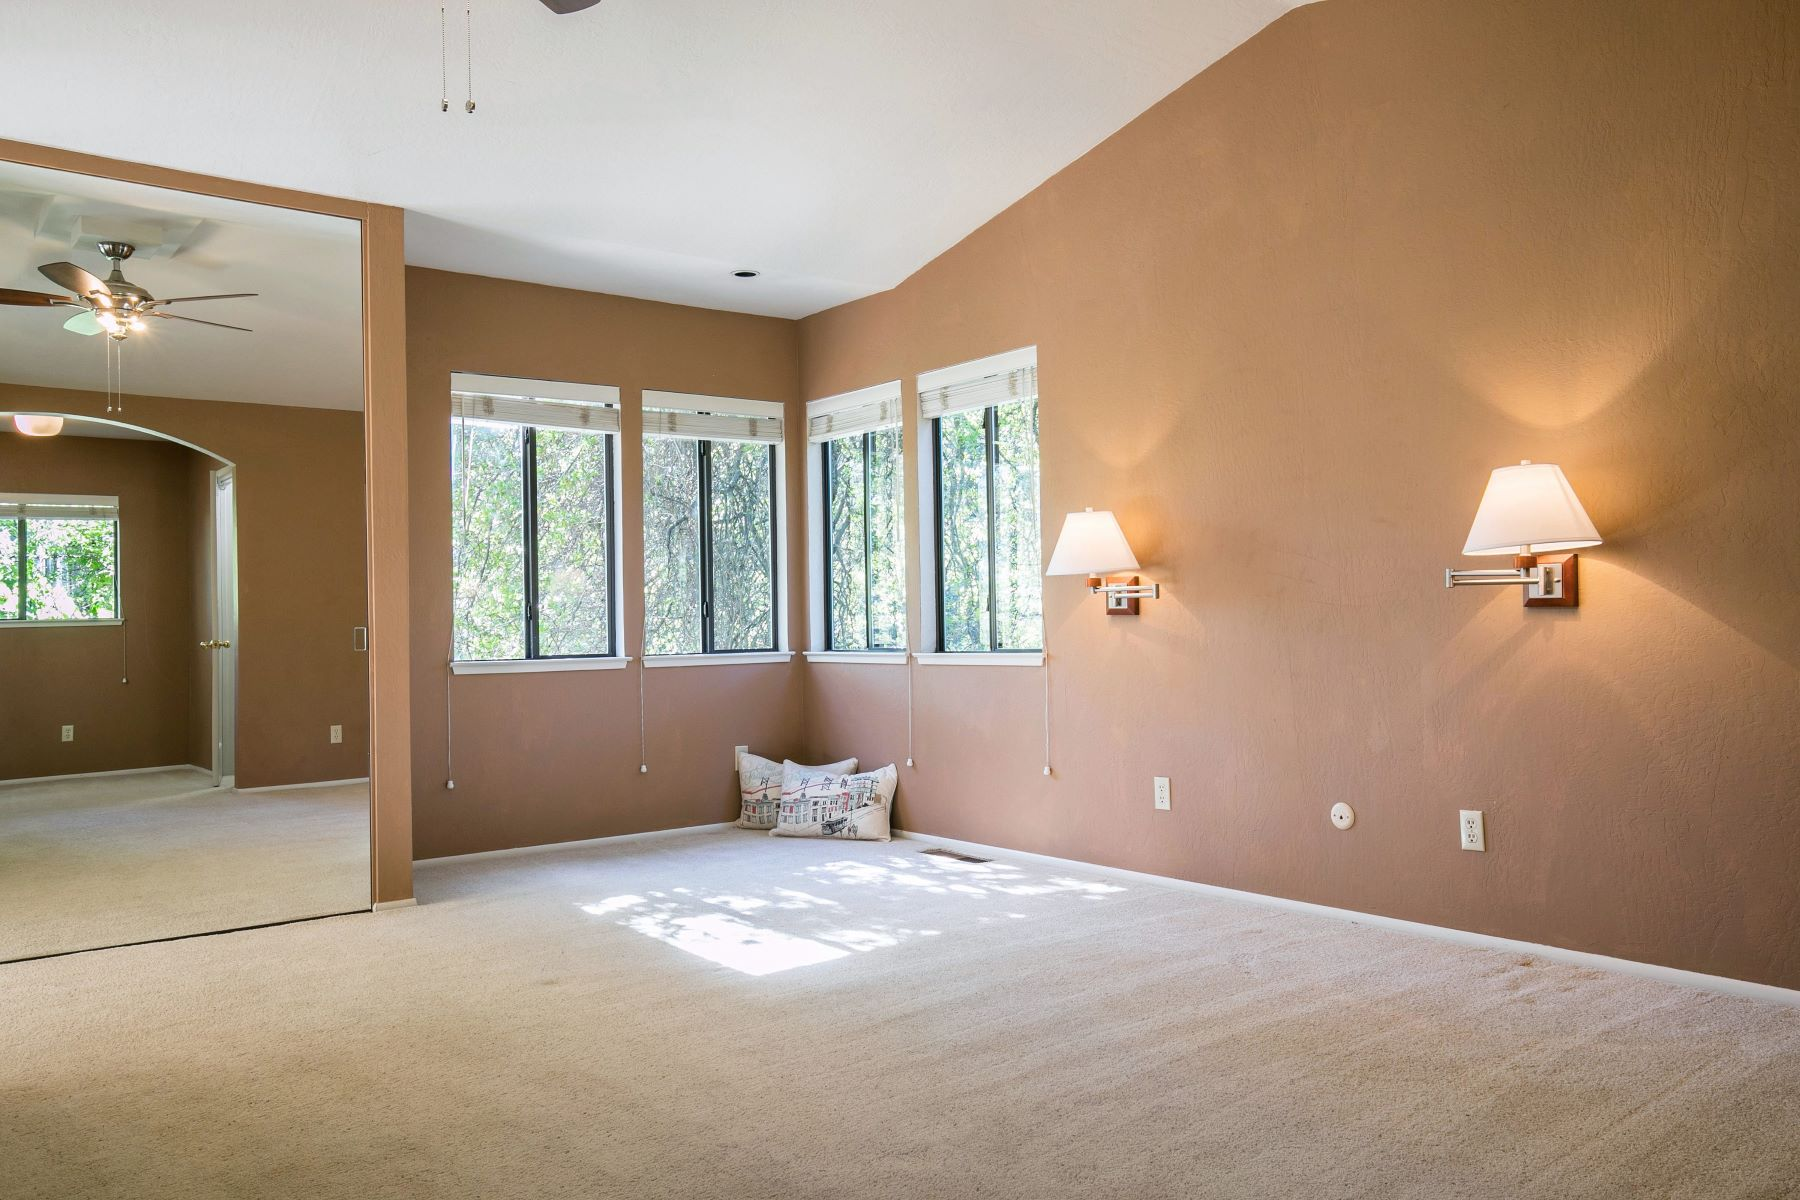 Additional photo for property listing at 130 Oaktree Drive, Auburn, CA 130 Oaktree Drive Auburn, California 95603 United States